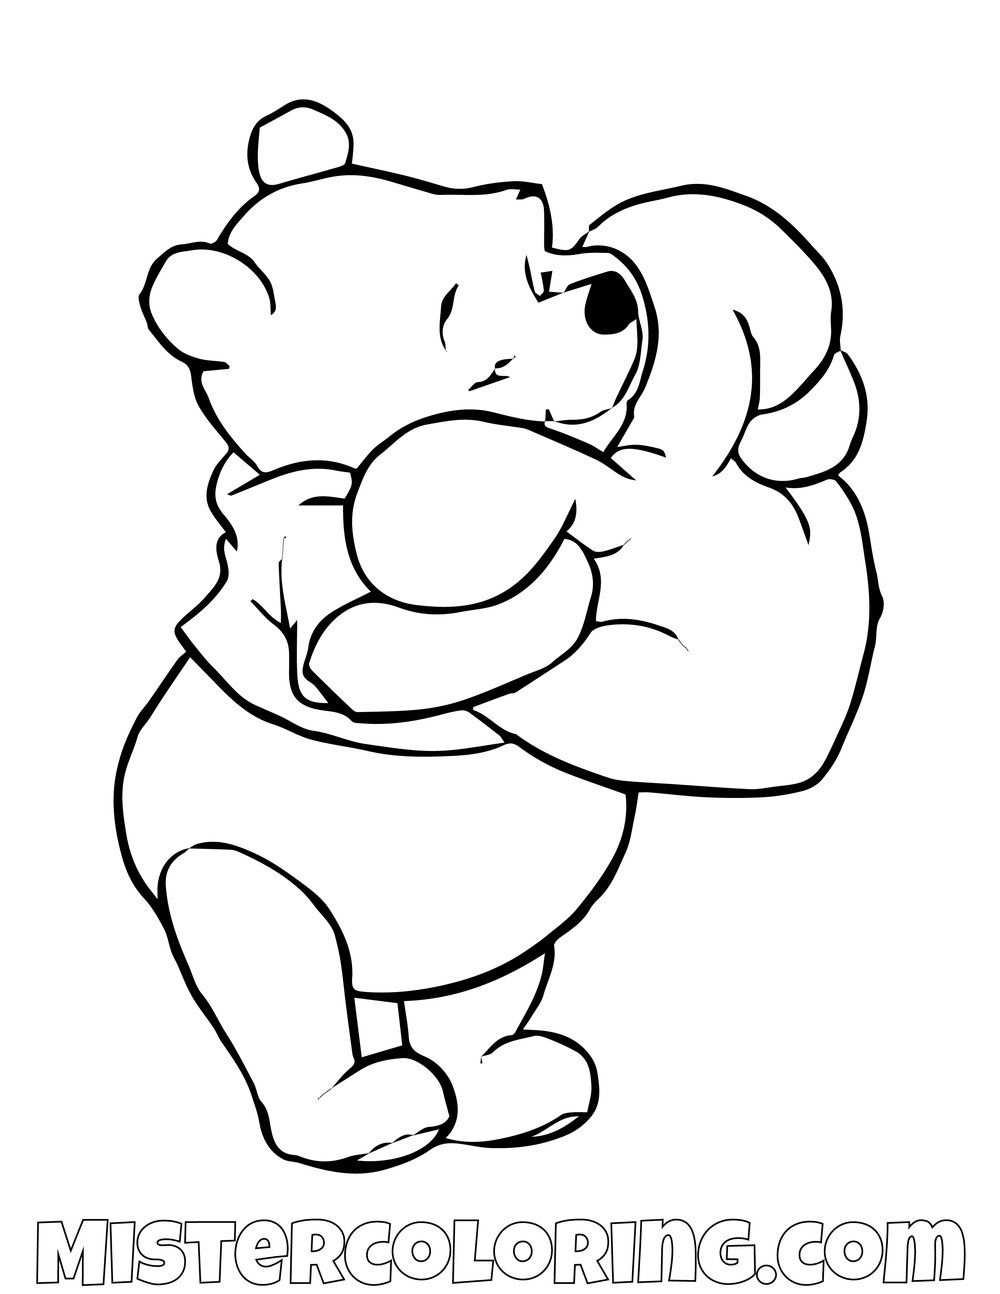 Winnie The Pooh Hugging A Heart Coloring Page With Images